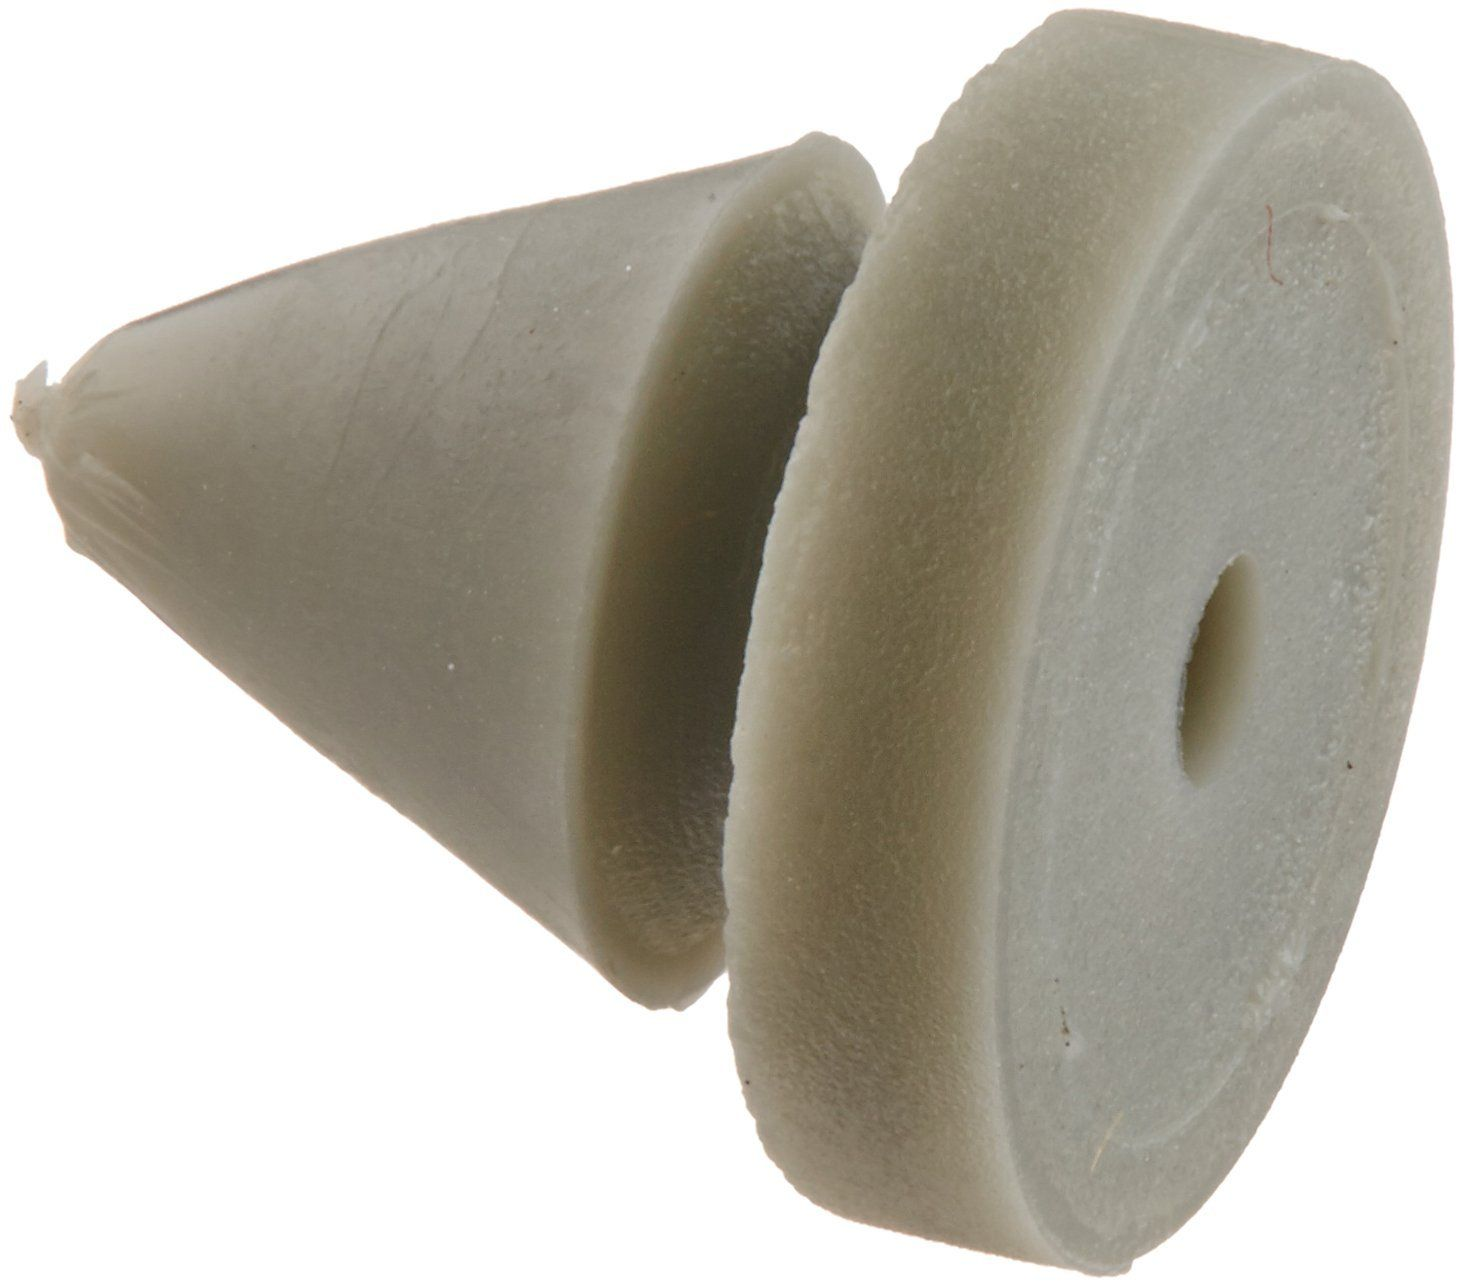 Door Frame Stopper Foam Door Stopper Caster Chairs Door Stopper